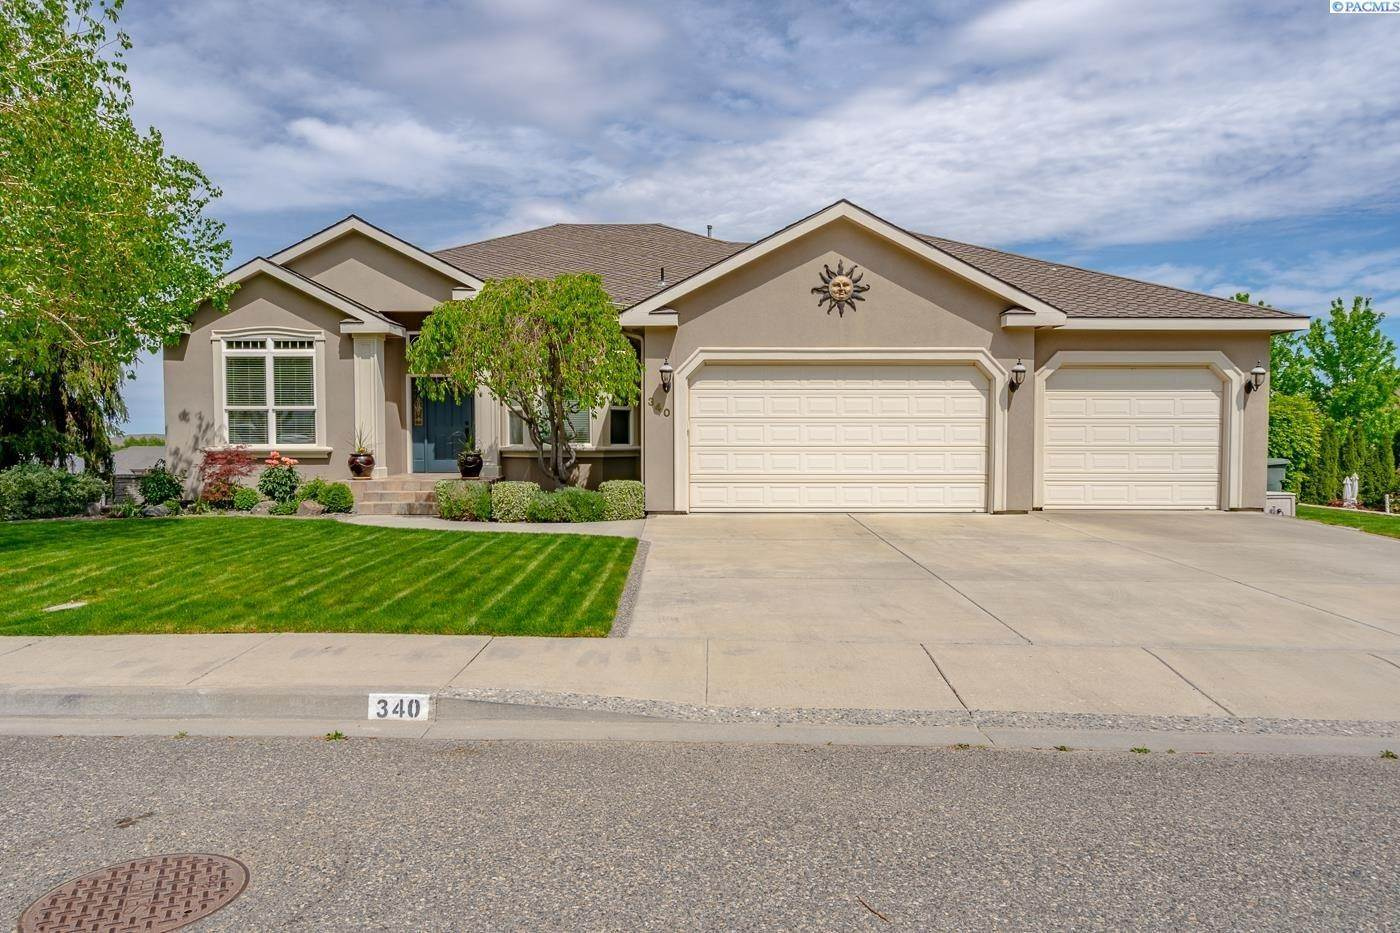 Single Family Homes for Sale at 340 Falconridge Street Richland, Washington 99354 United States